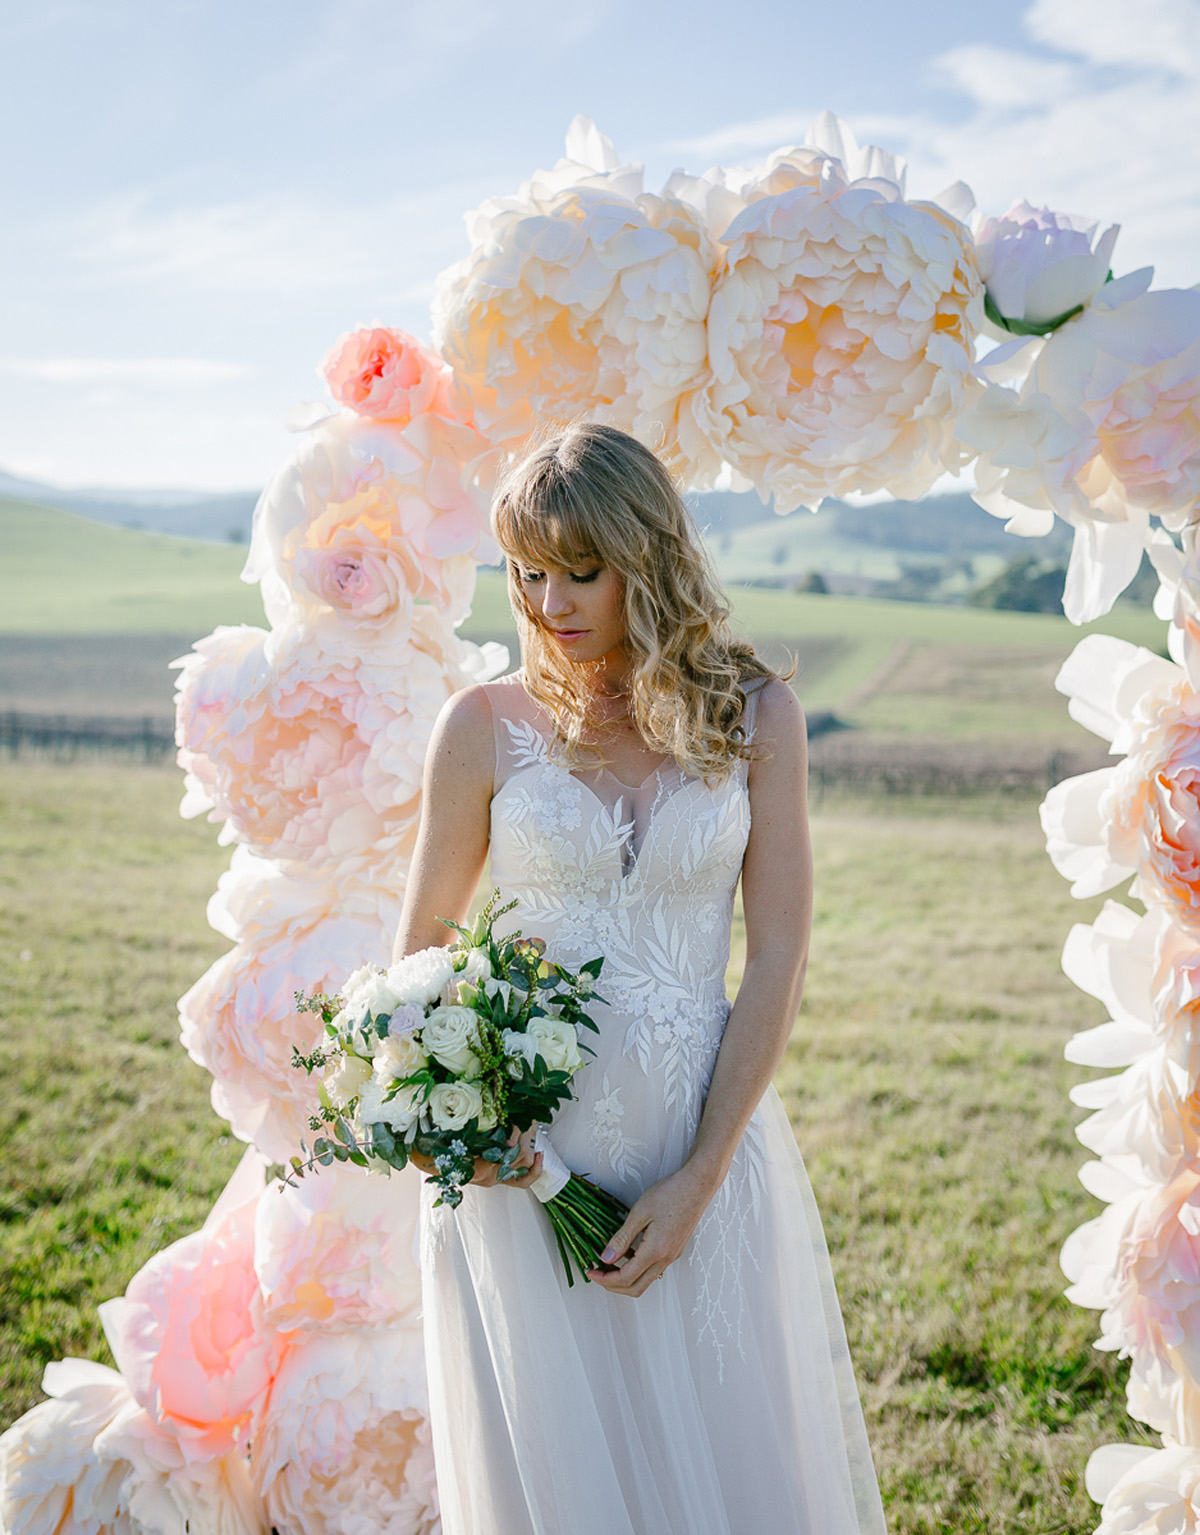 123718 whimsical florals fashion wedding editorial by lx creations